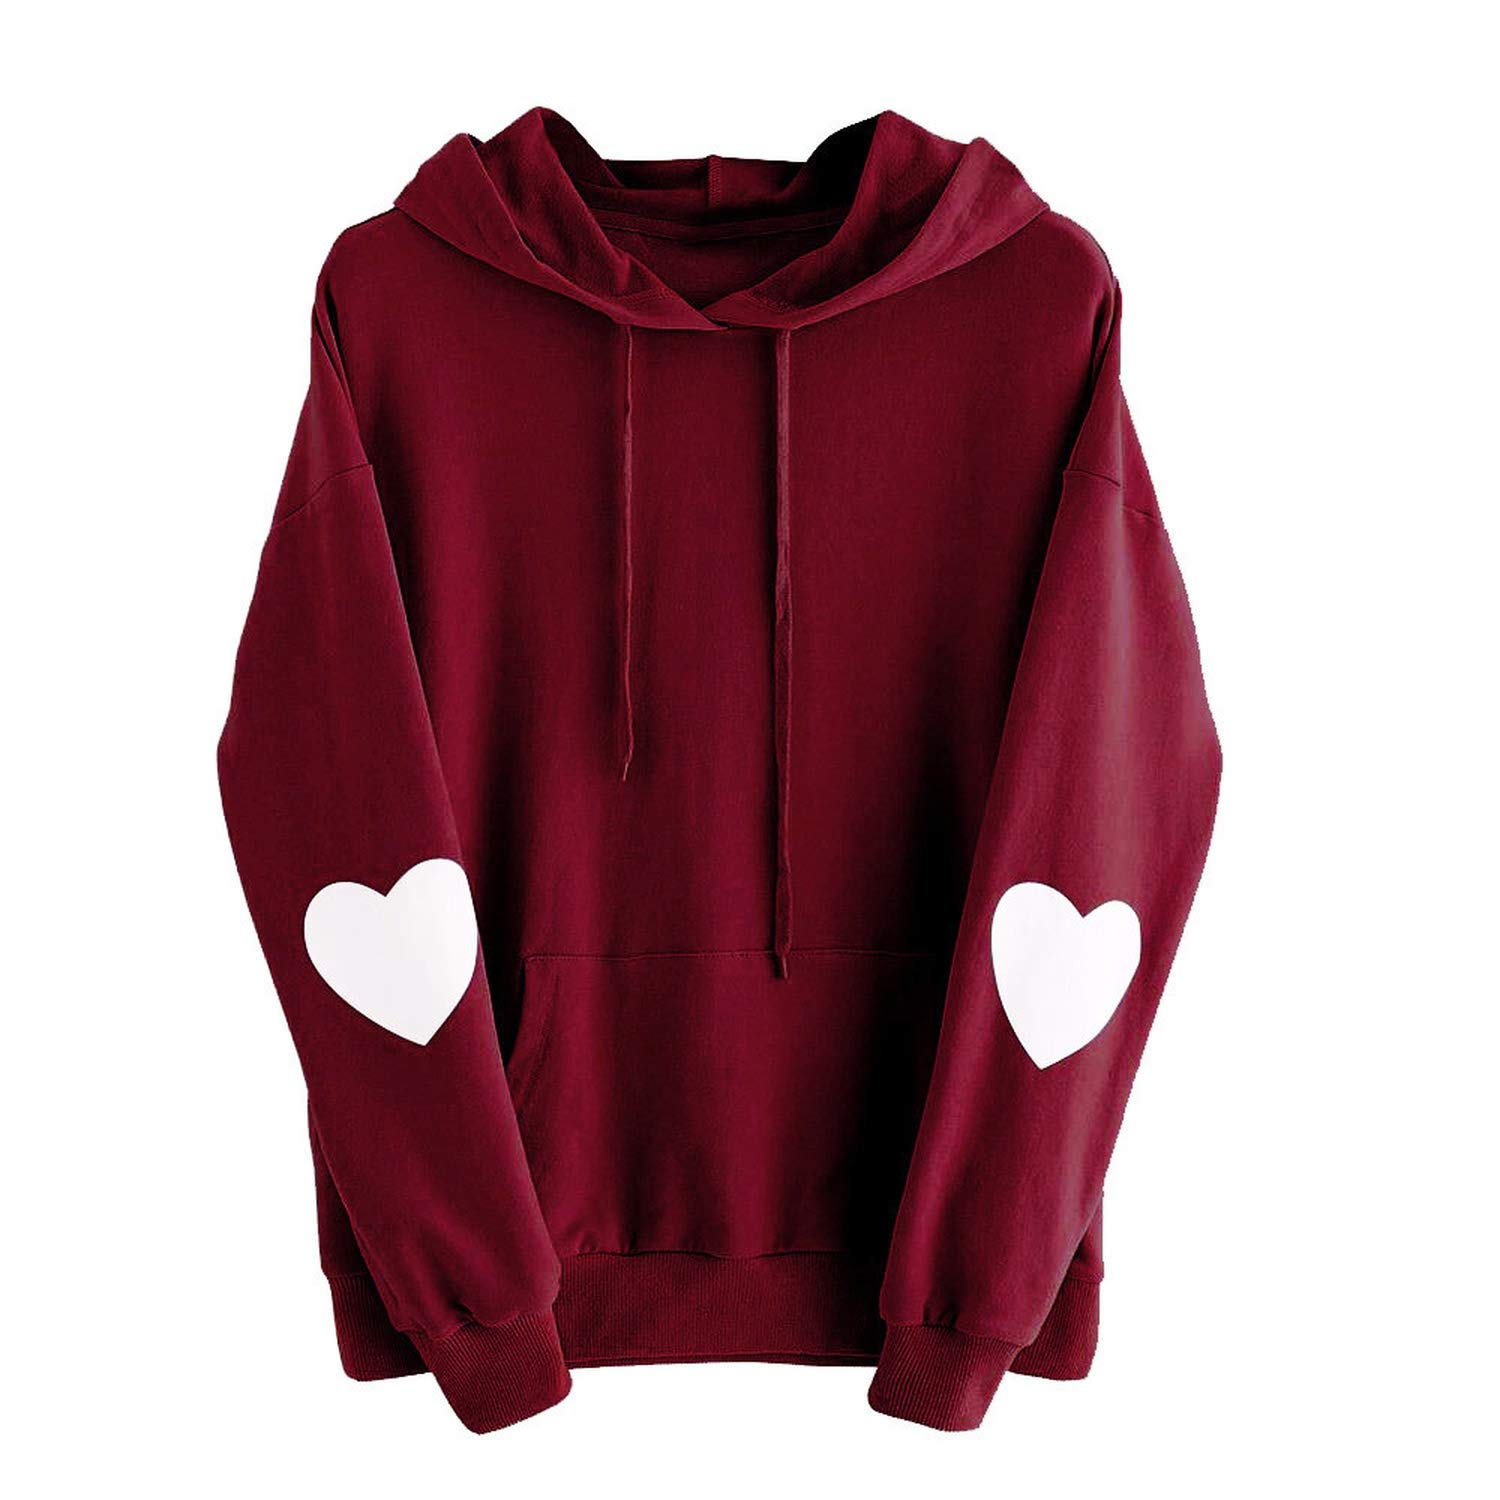 3 Color Women Hoodies Long Sleeve Shirt Heart Printed Pink Girls Sweatshirt Autumn Winter Hooded Pullover Tops Sudaderas #L5 at Amazon Womens Clothing ...